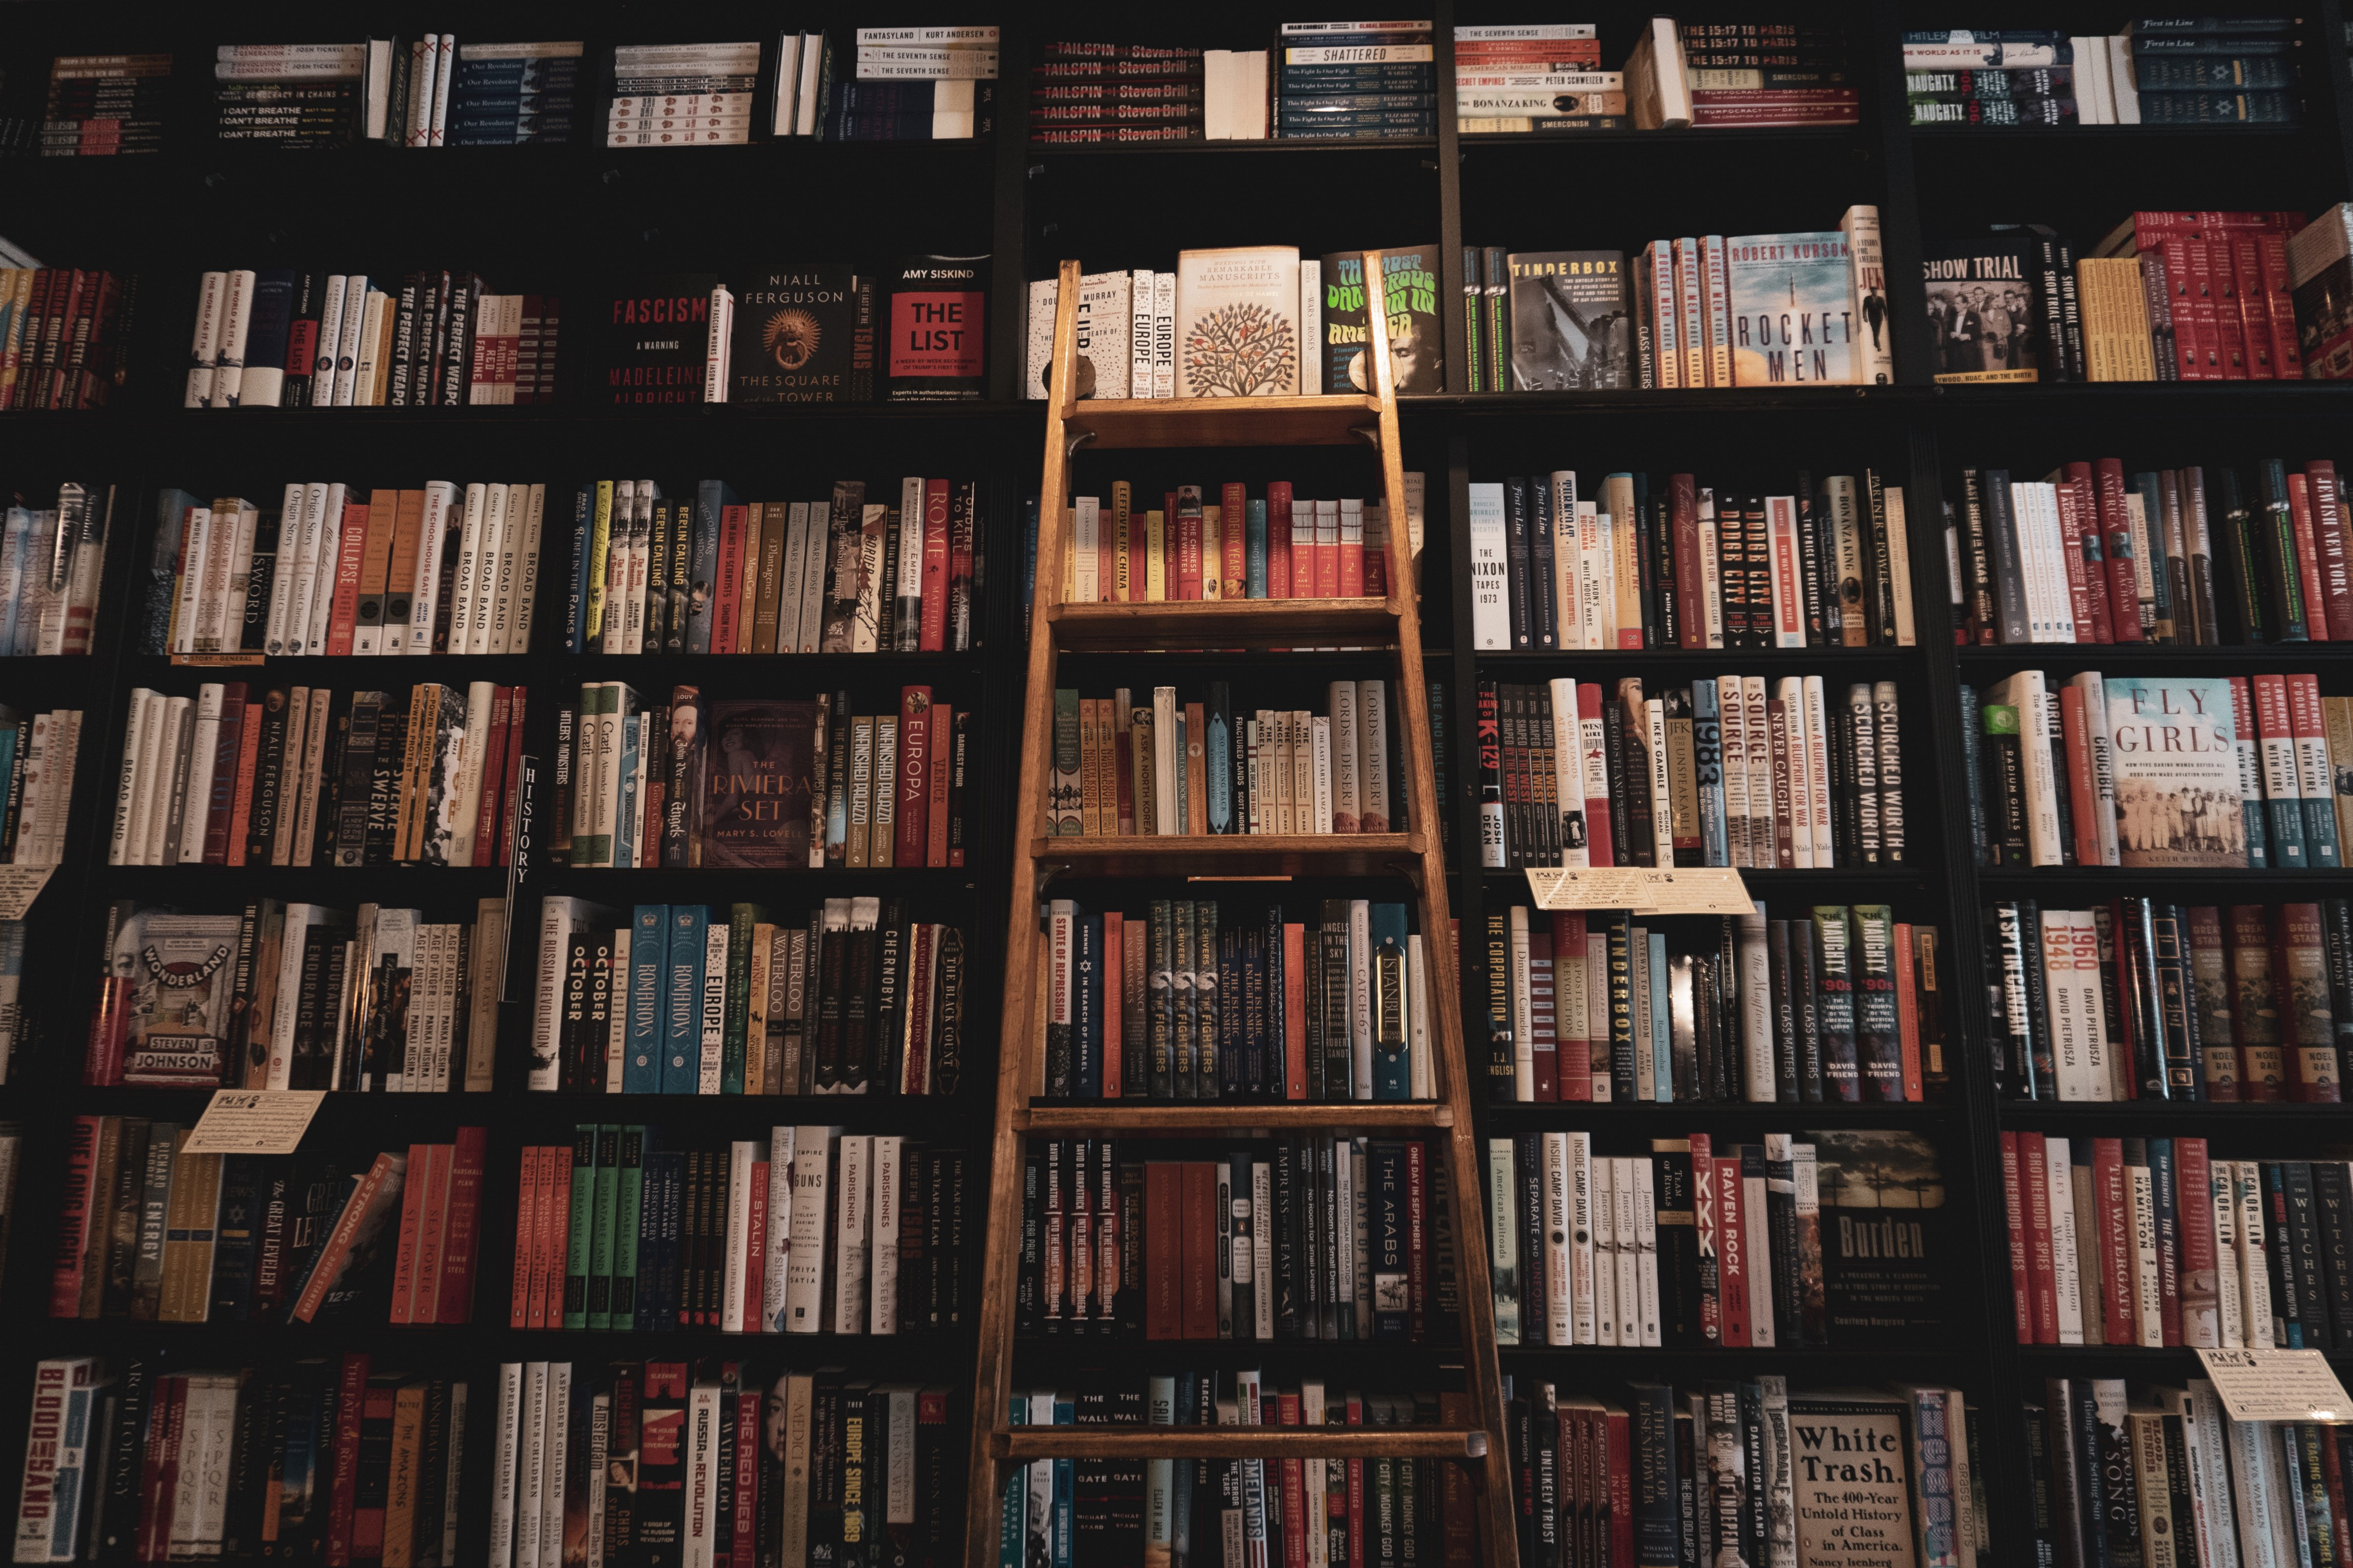 How we all helped(unknowingly) Google to digitize books